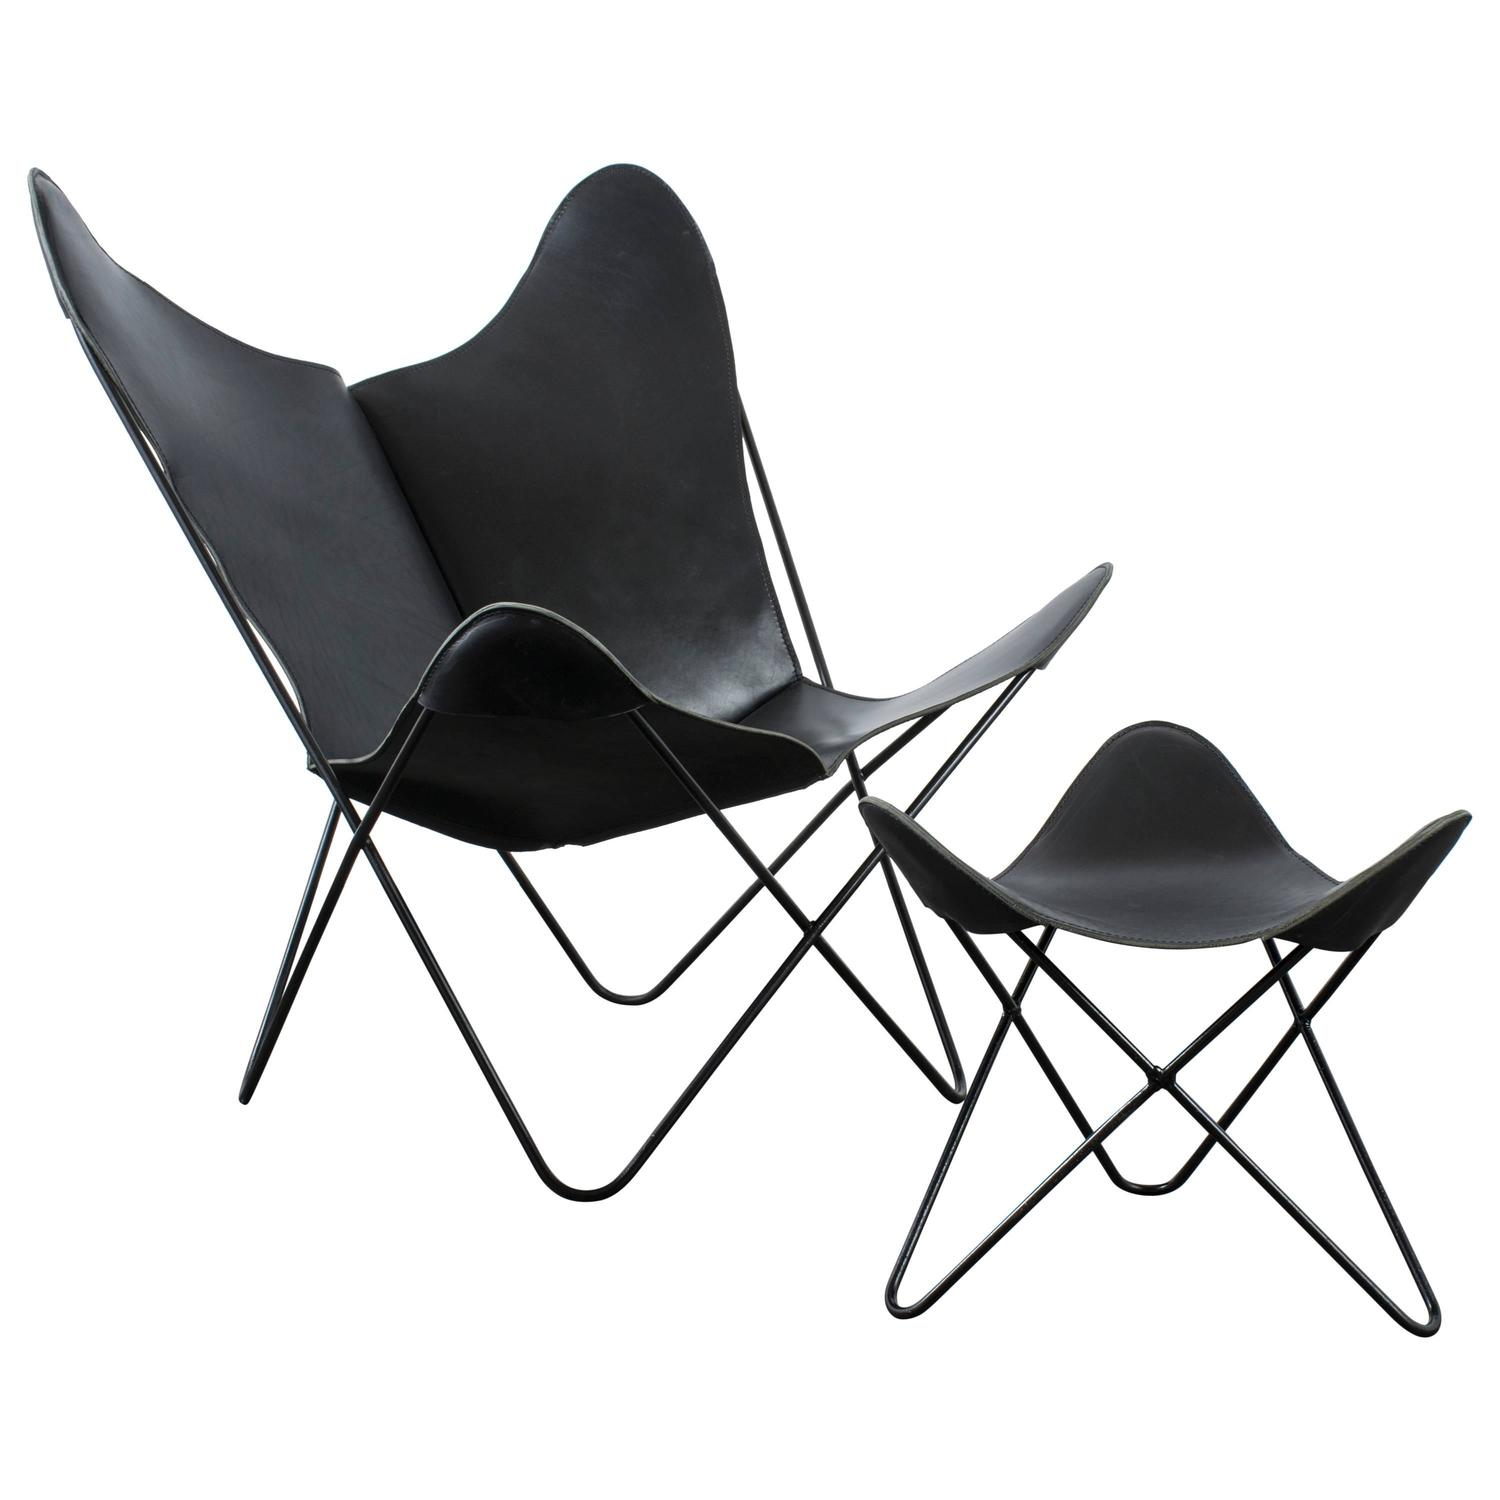 Butterfly chair black - Butterfly Chair Black 31